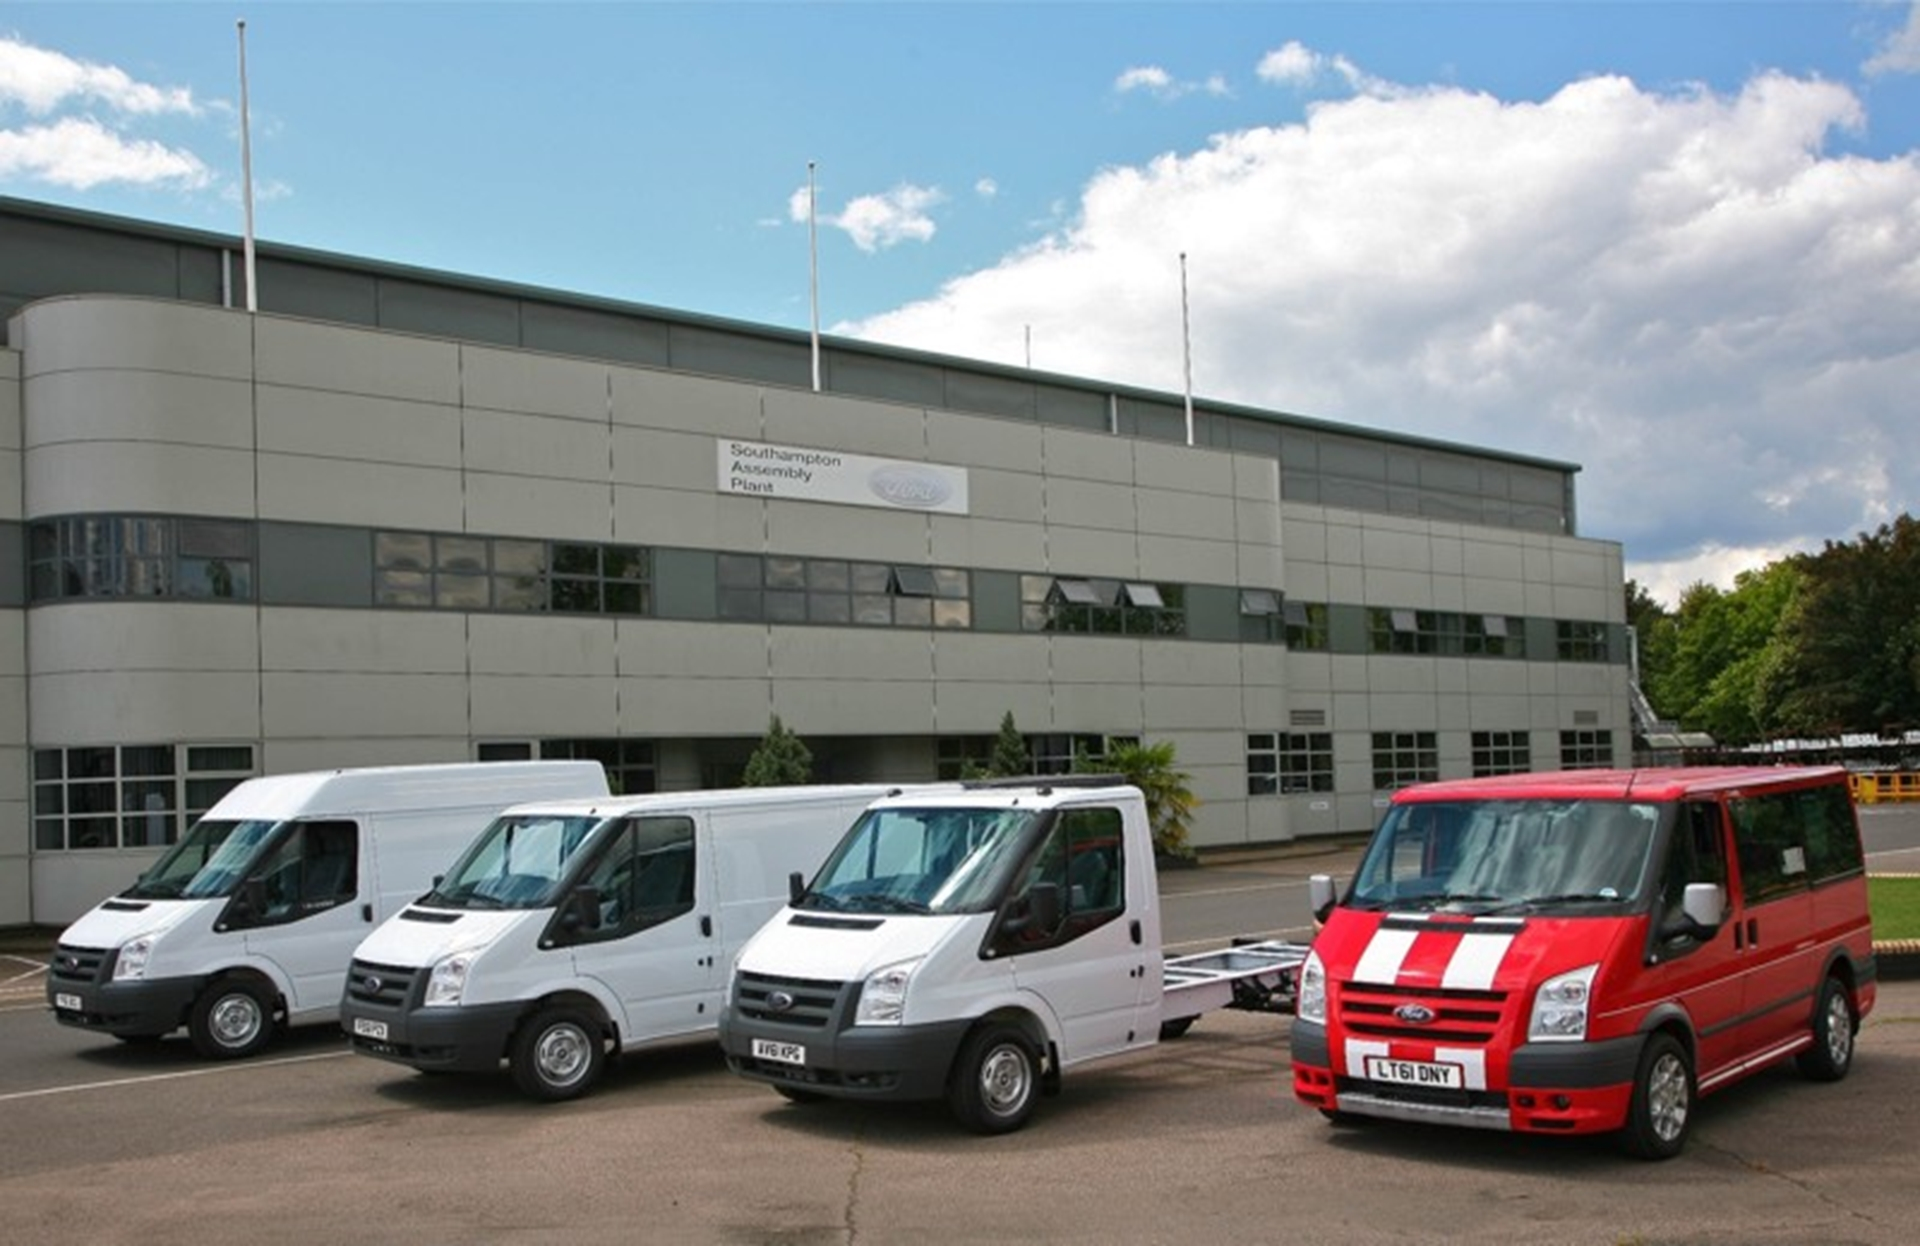 Ford commercial vehicles have been the UK's favourite